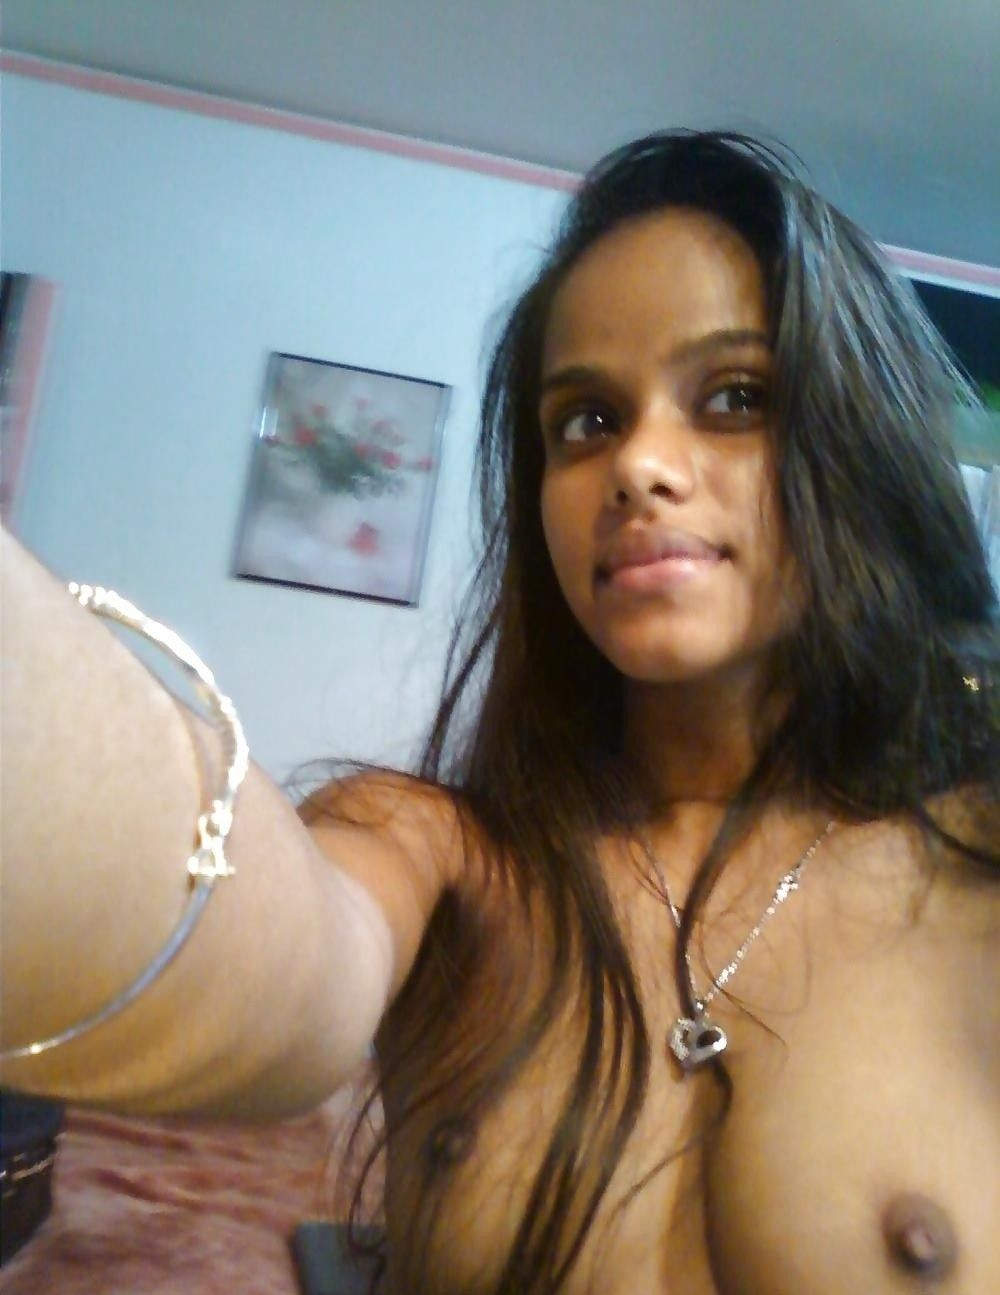 8947ba21aed07c8a5ad3279bcbdba923 - Collection Indian Naked Selfies New